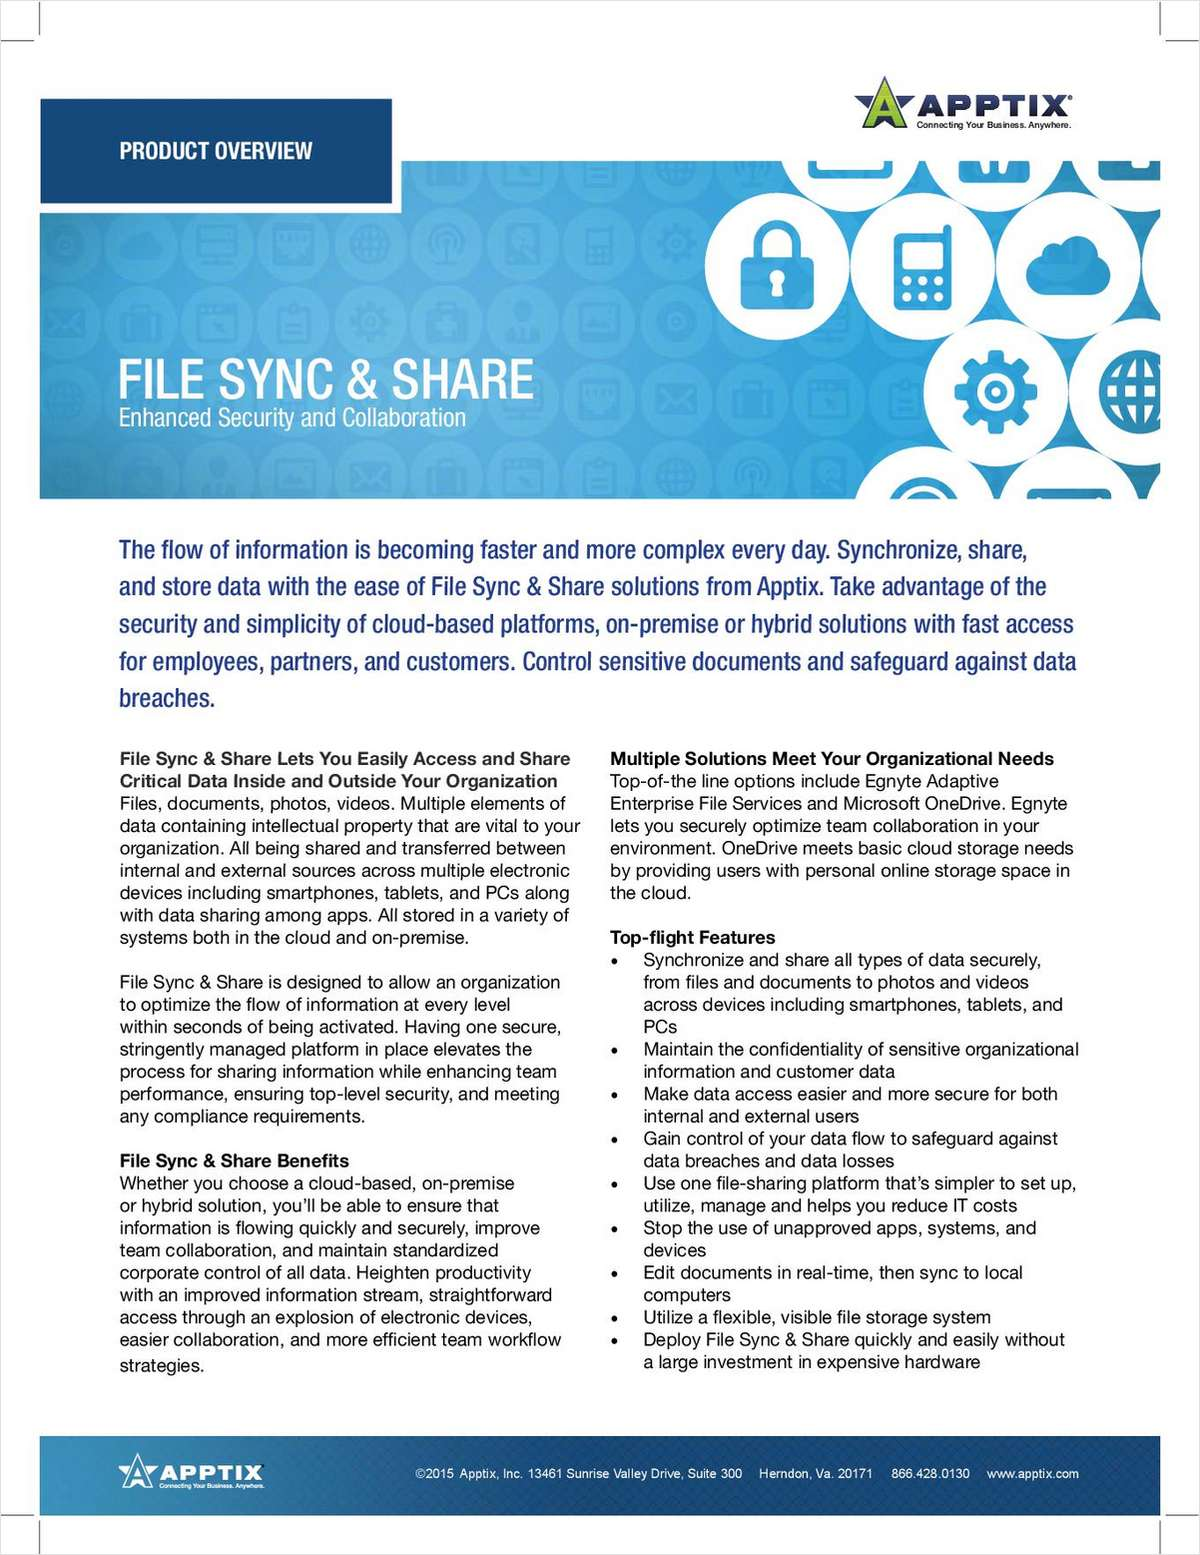 File Sync & Share Lets You Easily Access and Share Critical Data Inside and Outside Your Organization